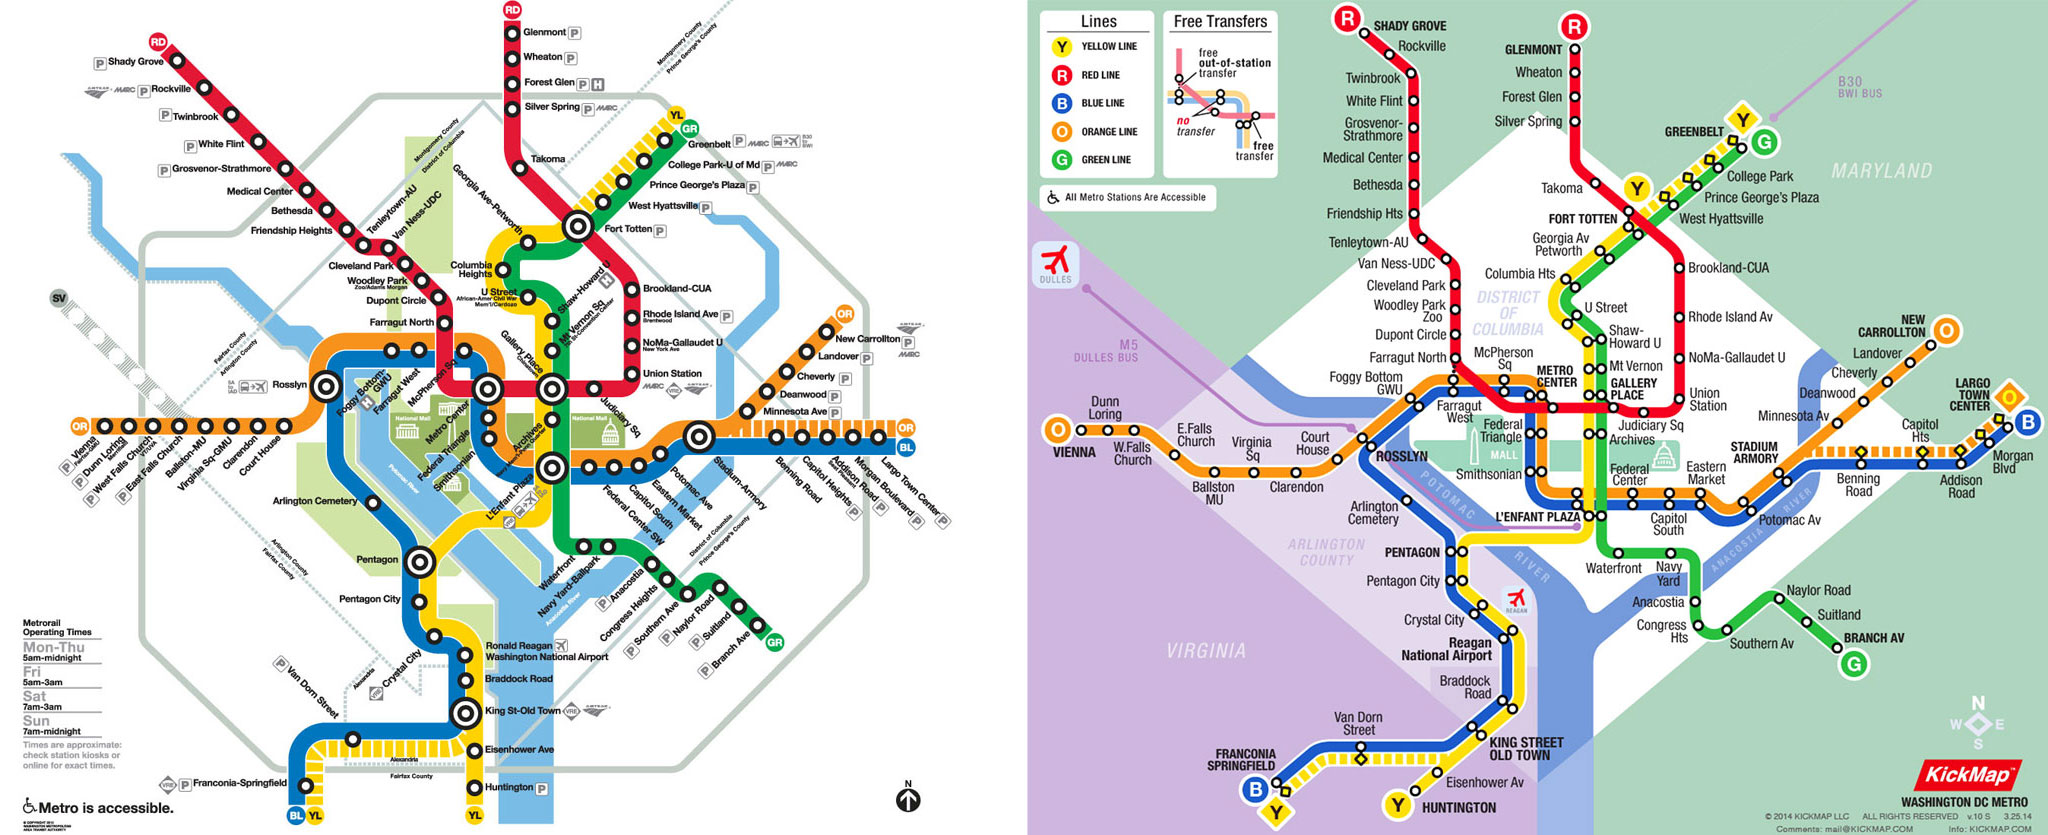 Kickmap Washington Dc Metro